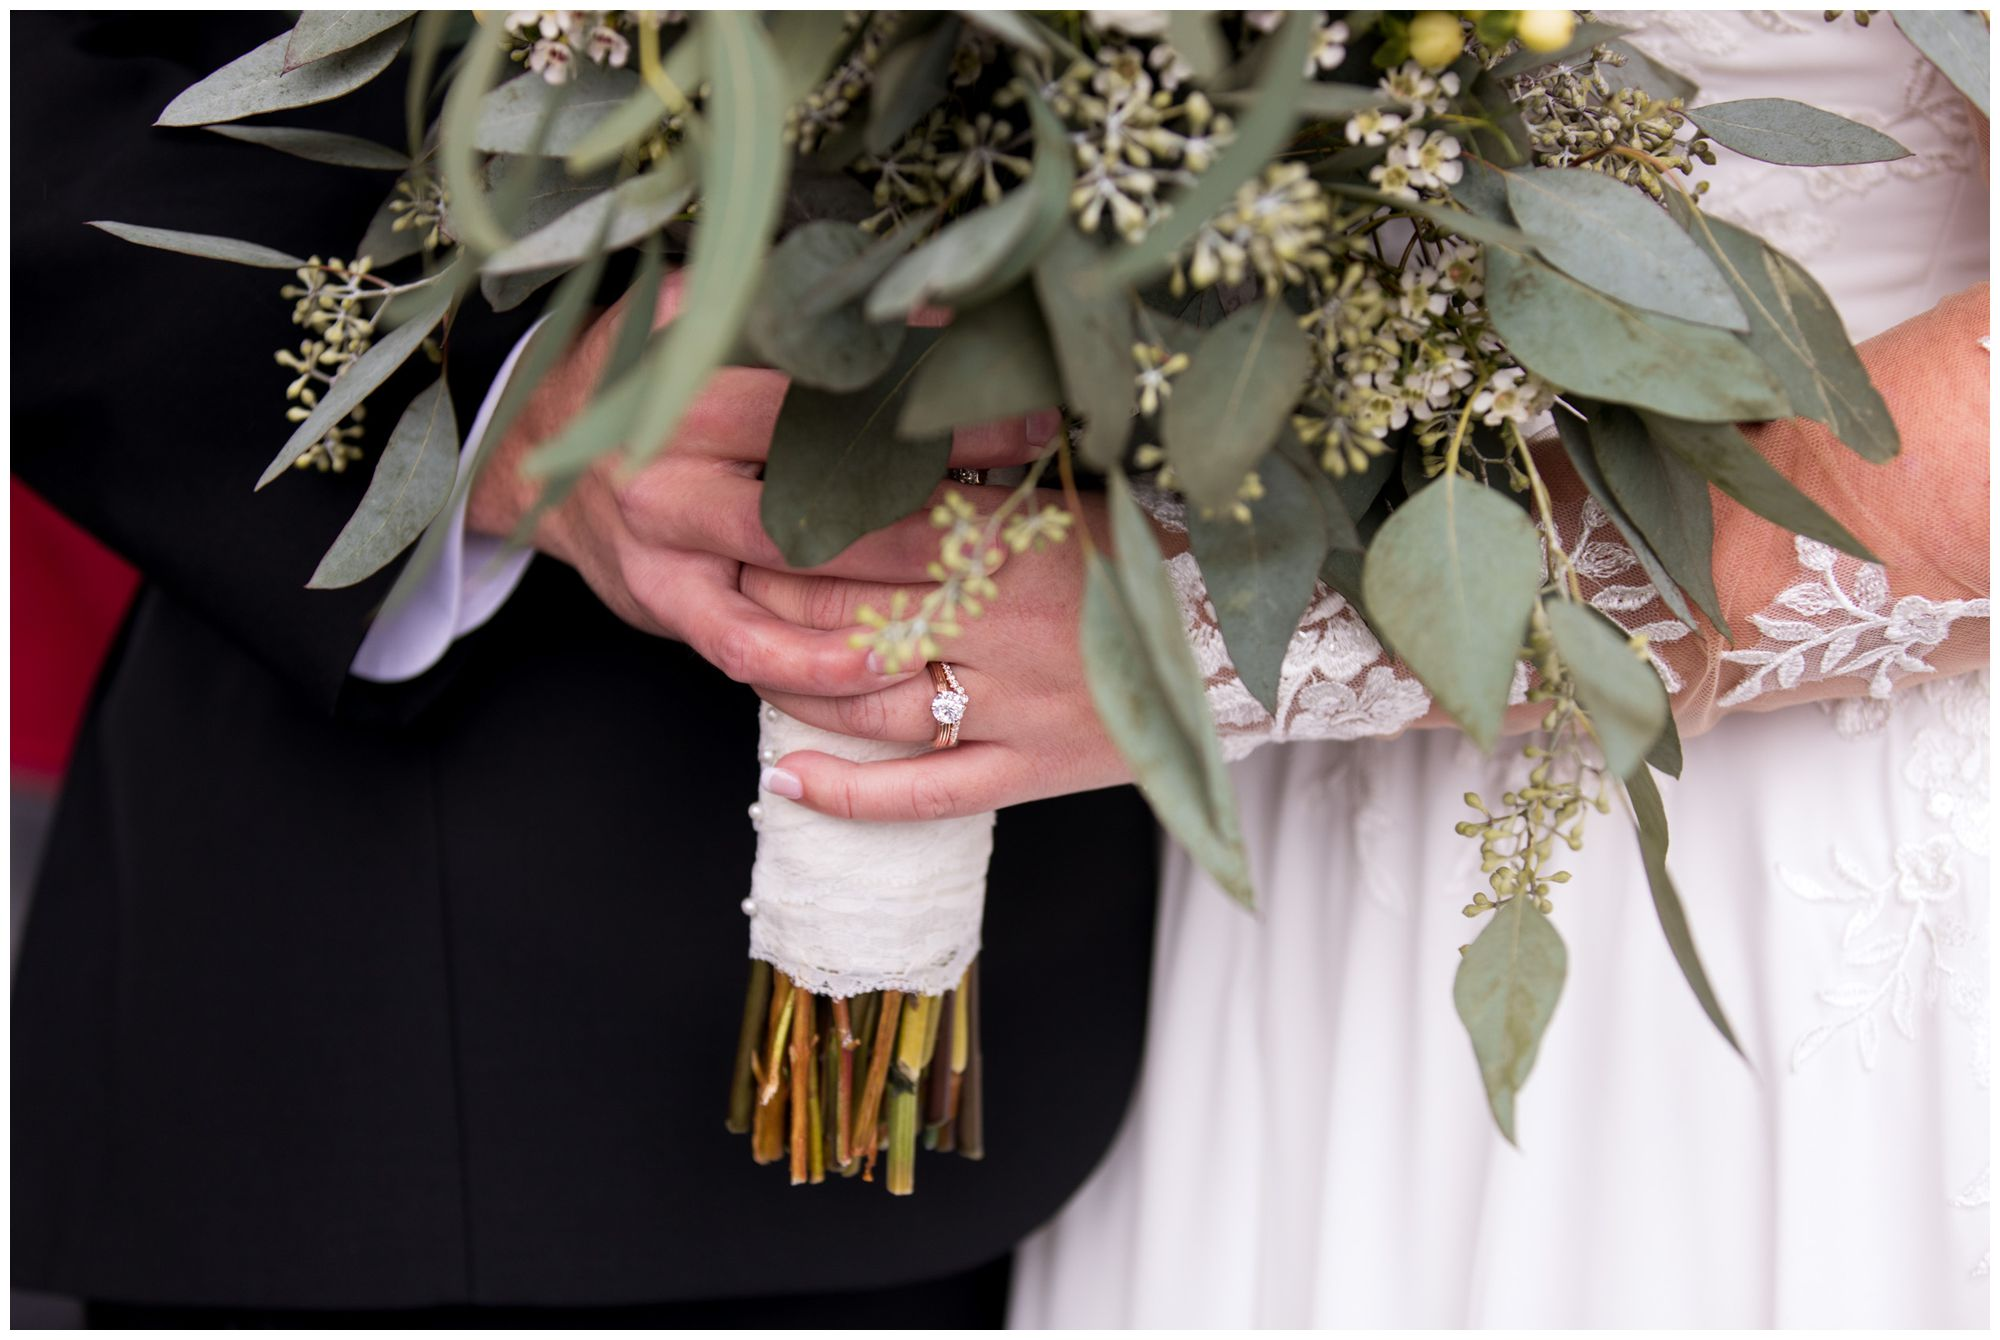 bride and groom's hands together holding bouquet in Decatur, Indiana